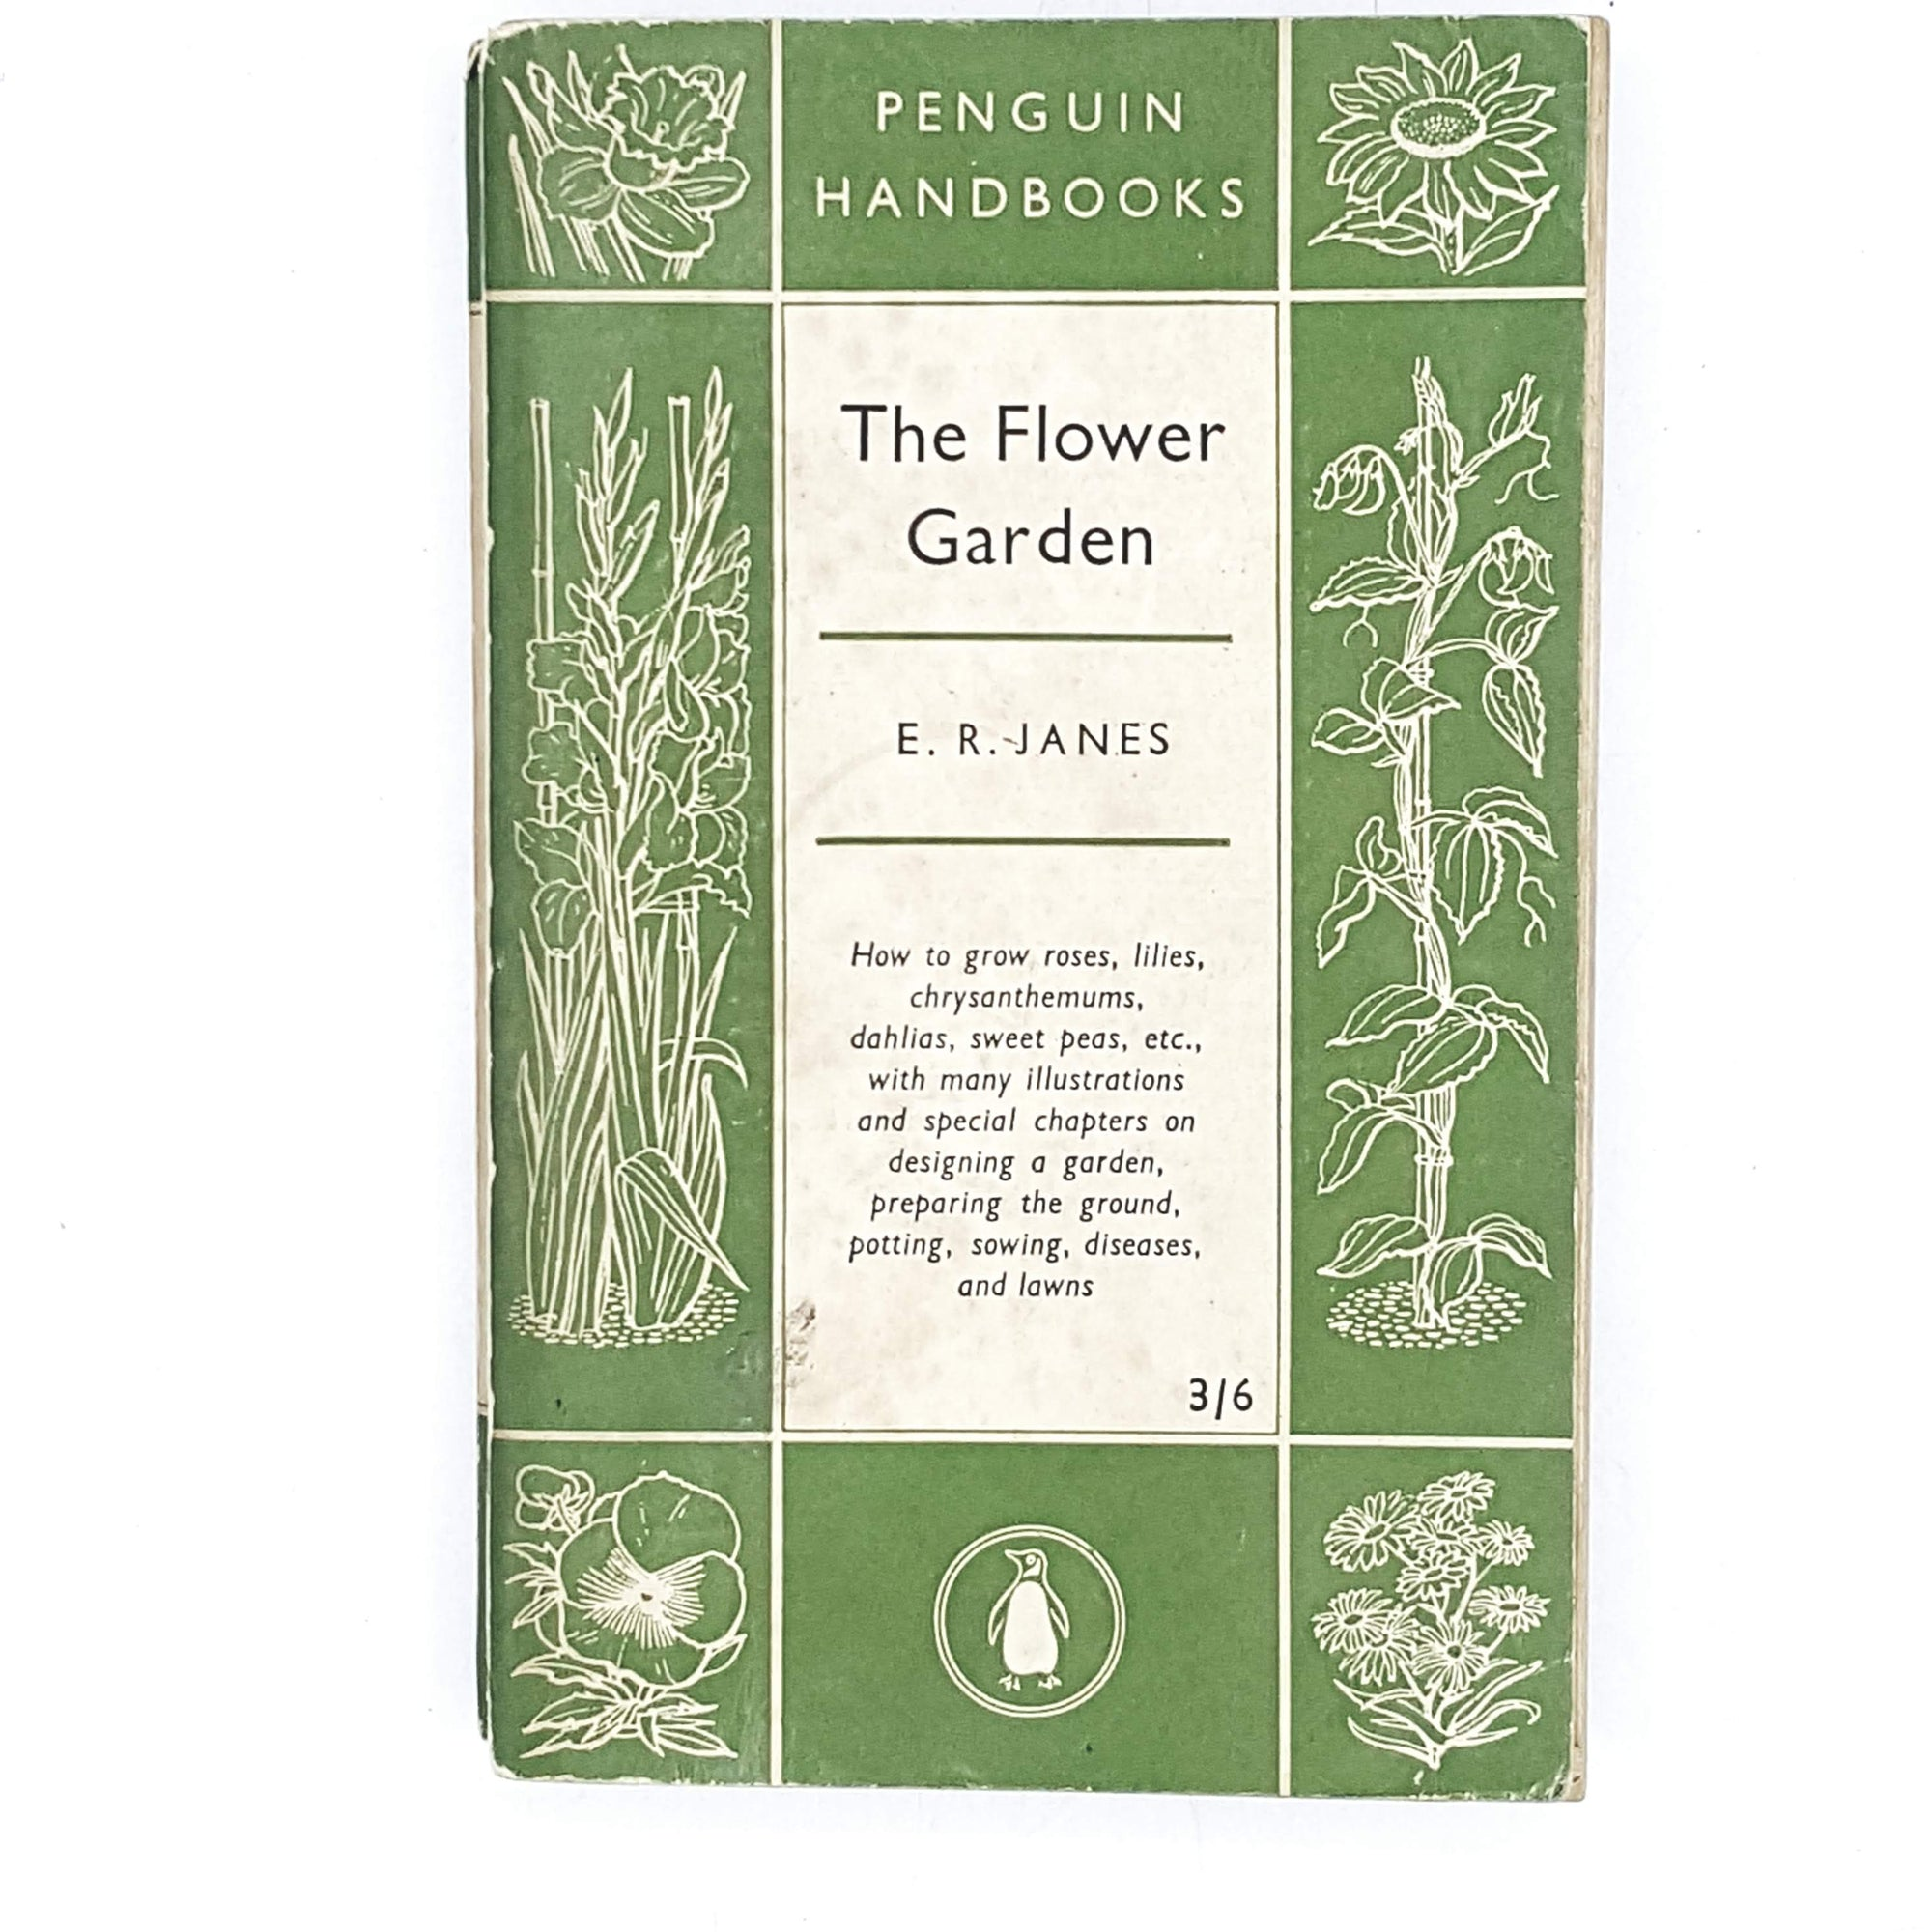 Vintage Penguin Handbook: The Flower Garden 1953